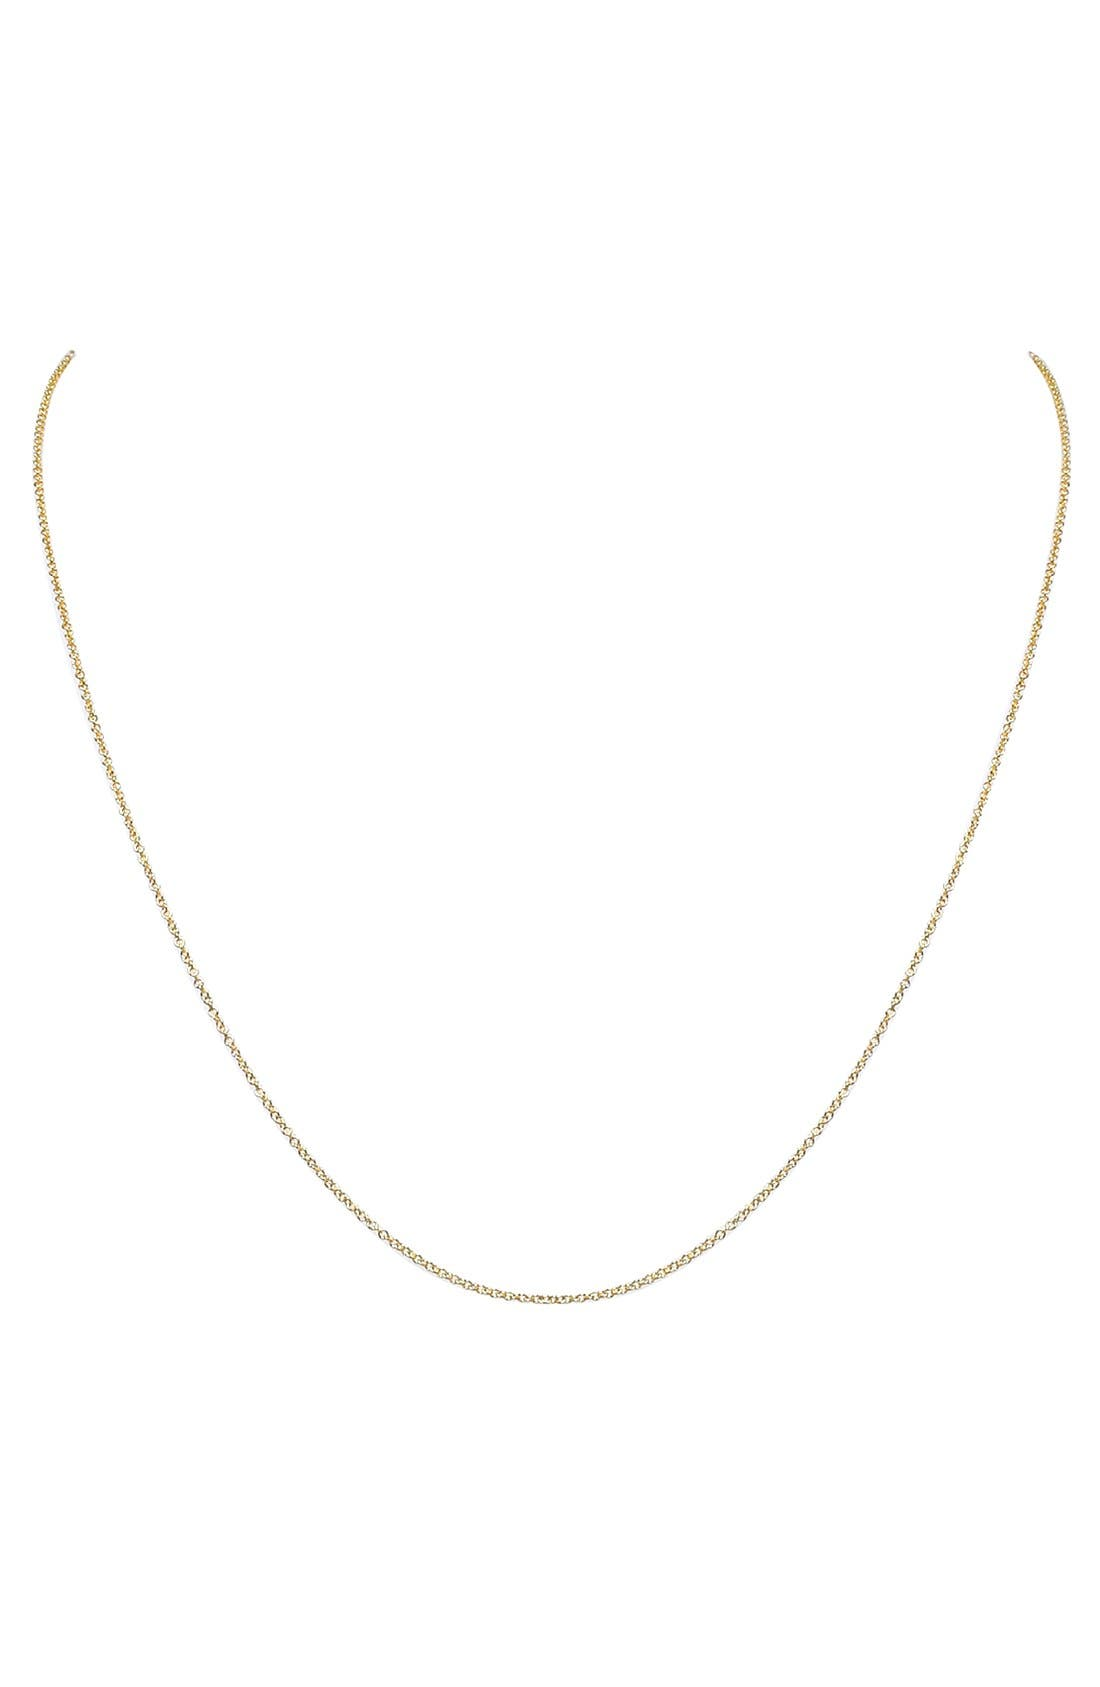 Chain Necklace,                             Main thumbnail 1, color,                             YELLOW GOLD